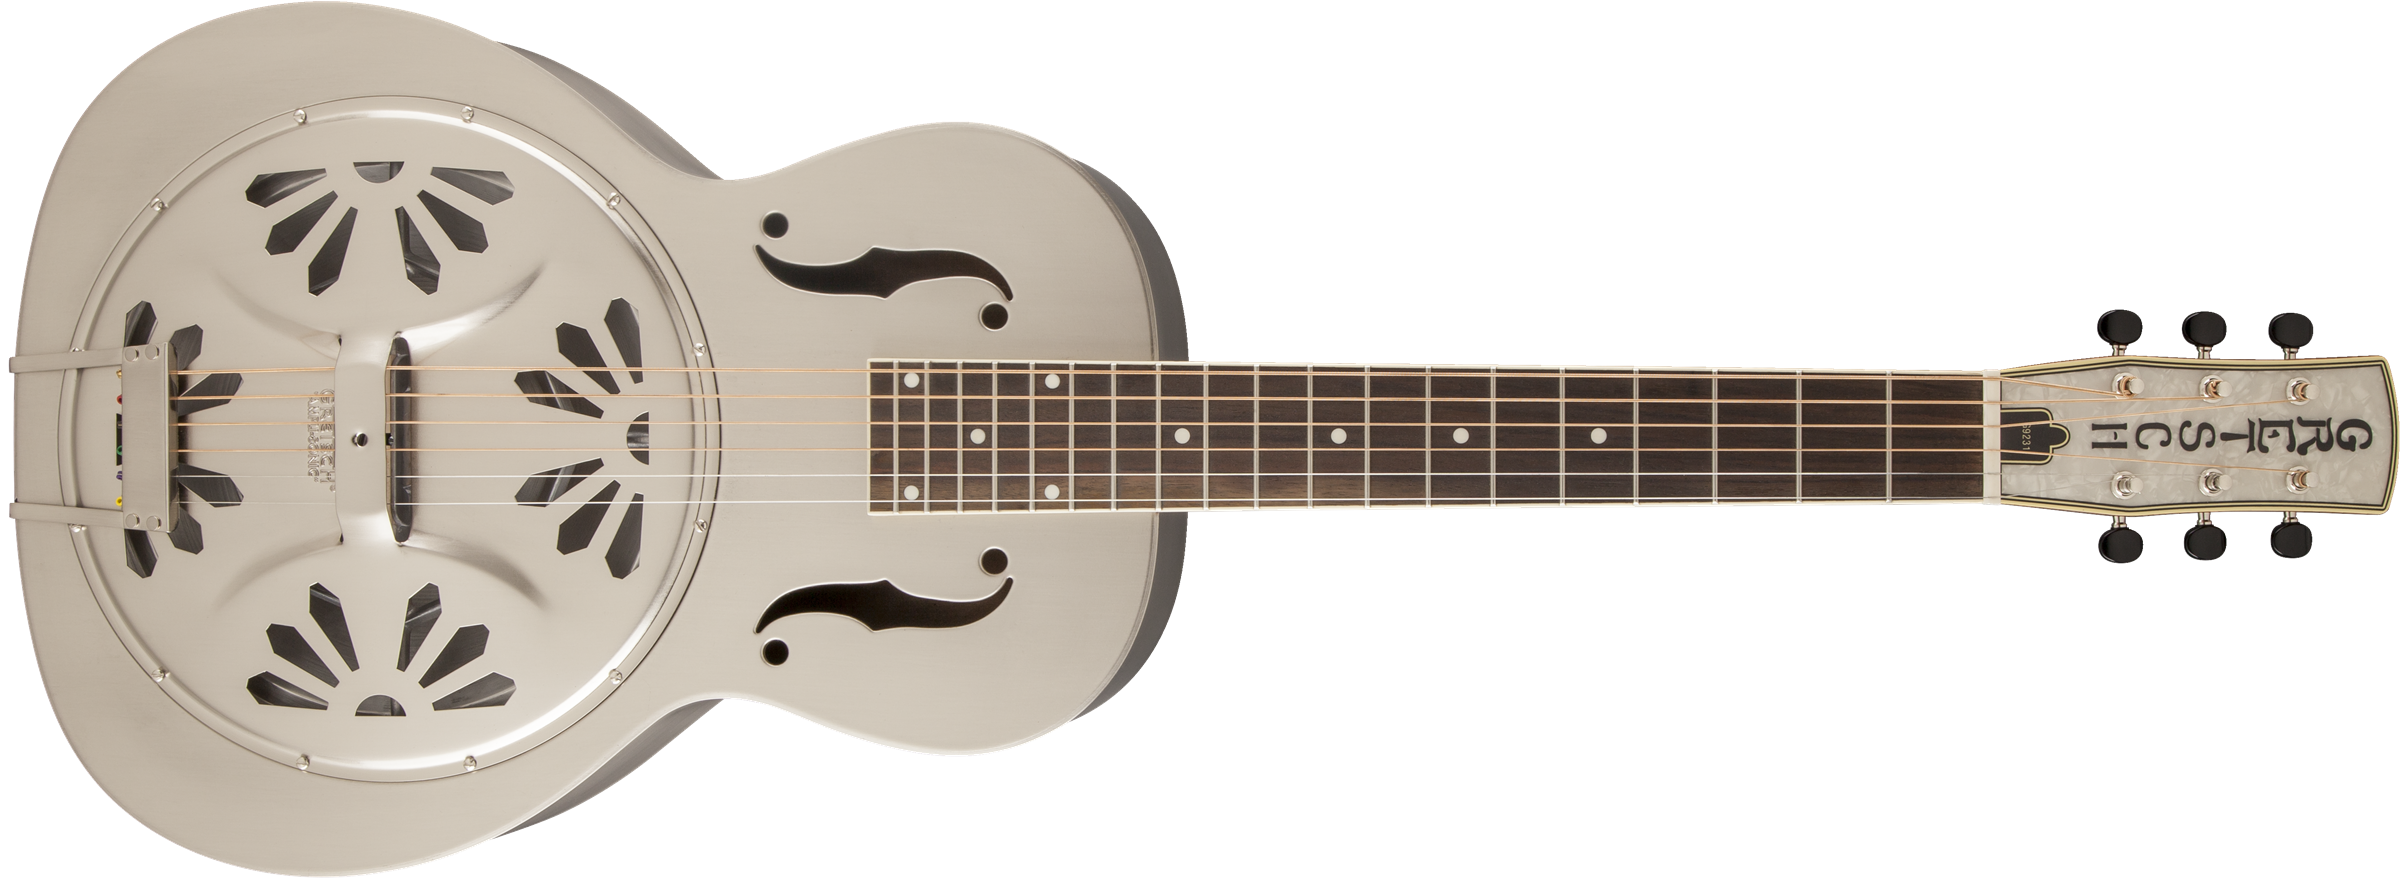 GRETSCH G9231 Bobtail Steel Square-Neck A.E., Steel Body Spider Cone Resonator Guitar, Fishman Nashville Resonator Pickup